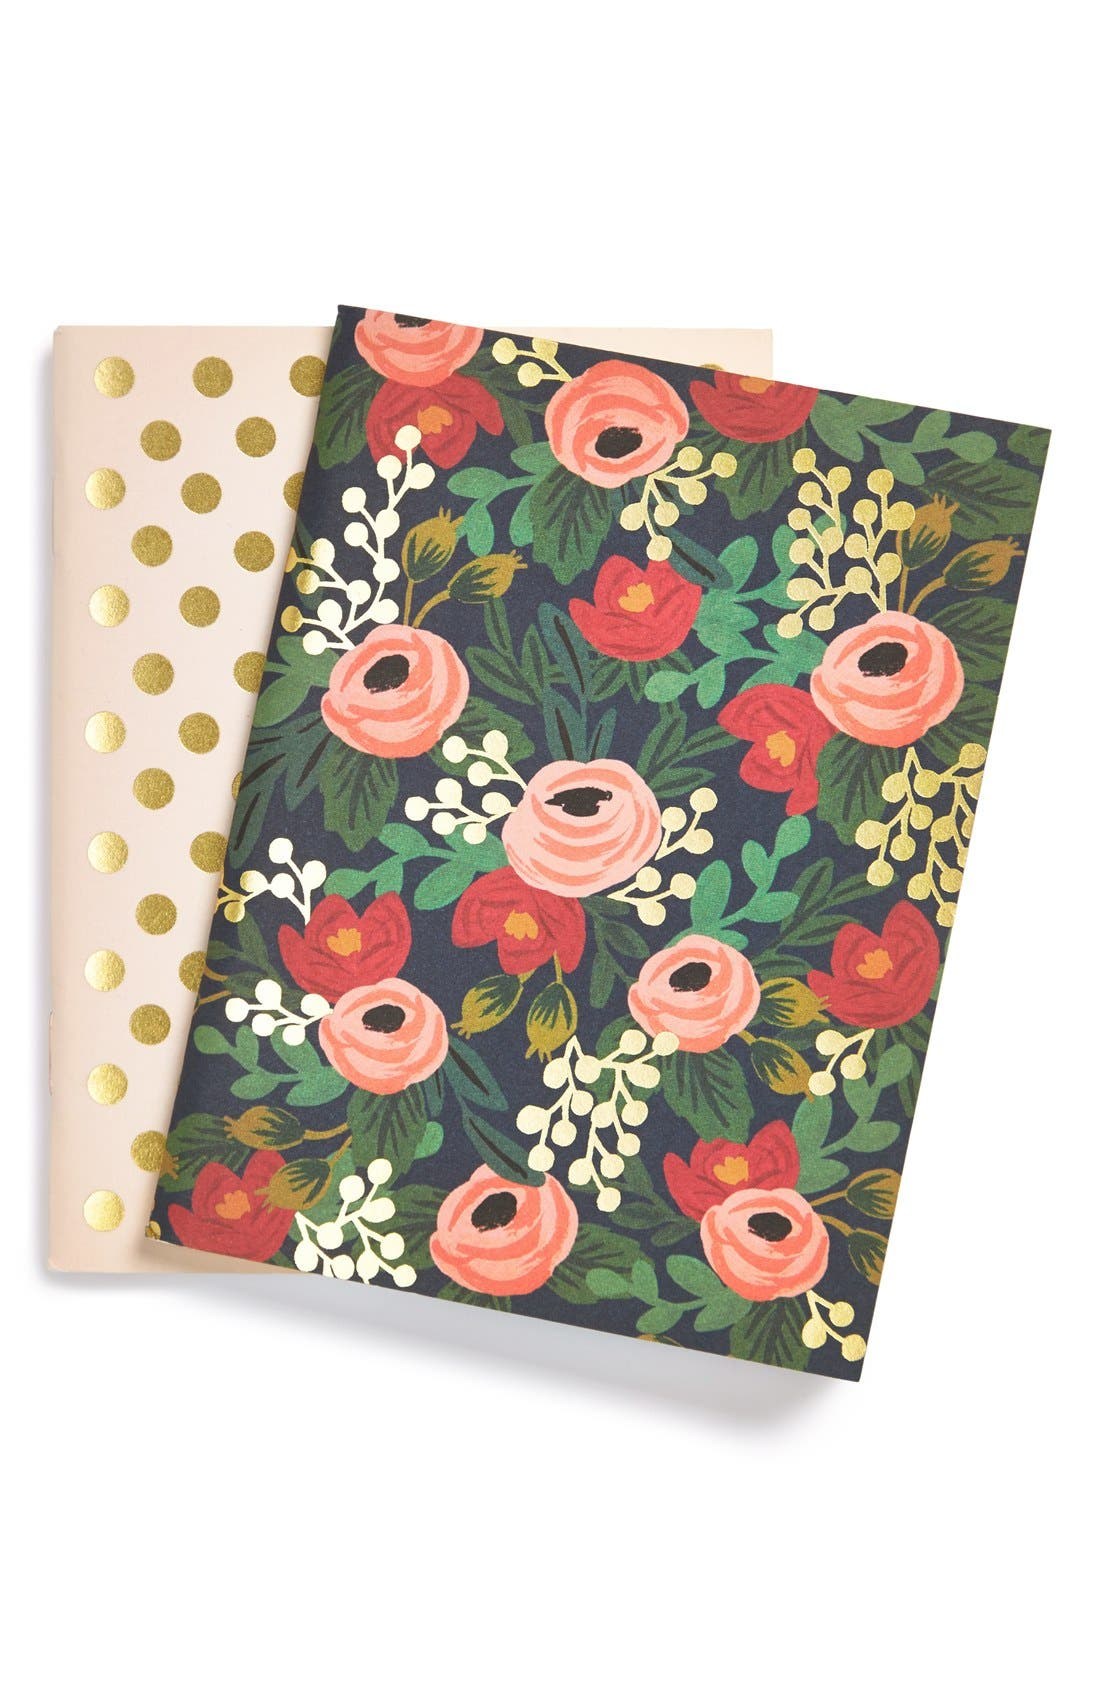 Alternate Image 1 Selected - Rifle Paper Co. Pocket Notebooks (Set of 2)